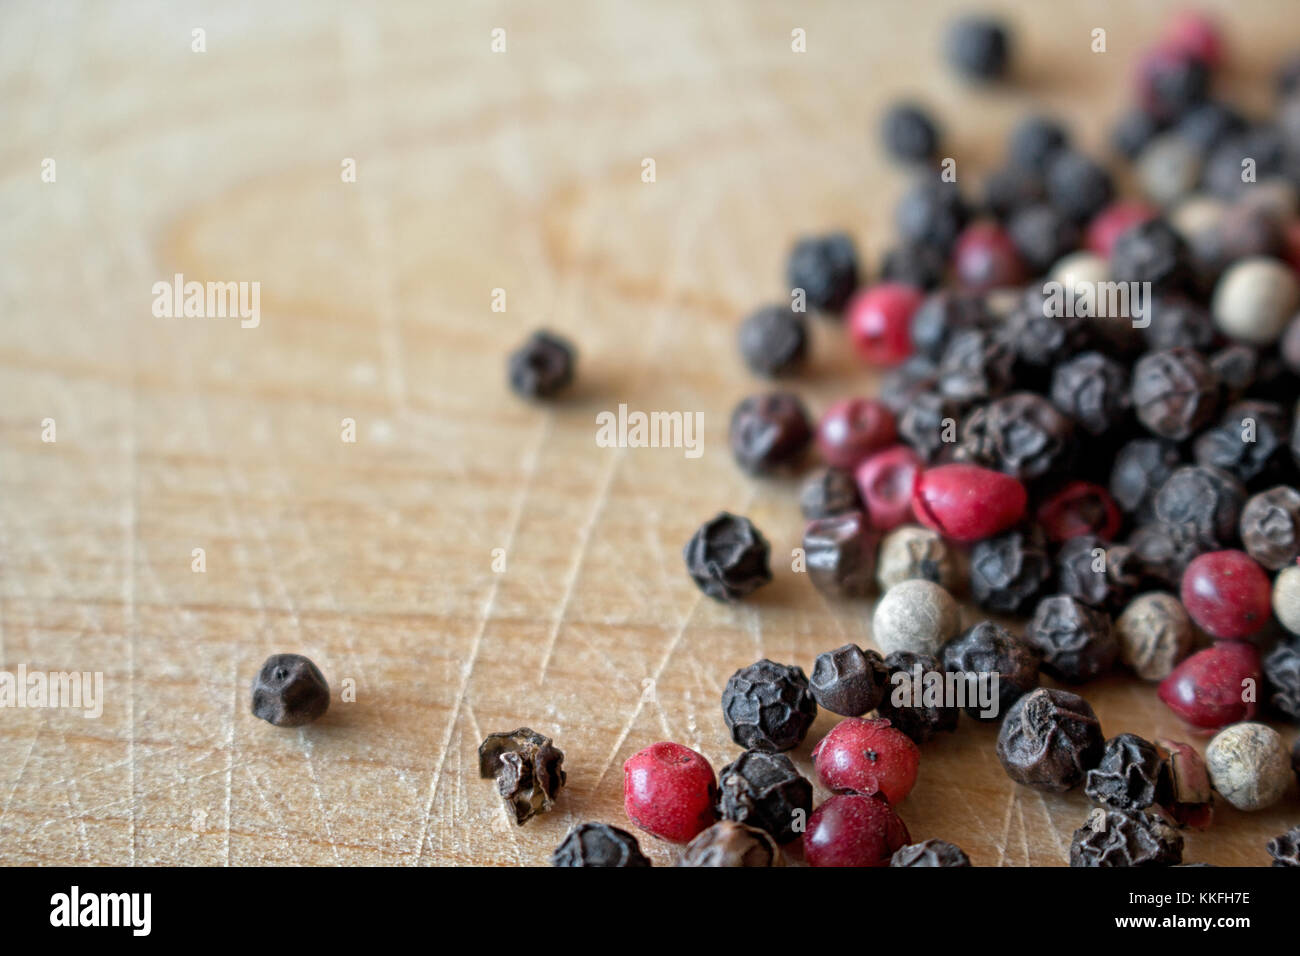 Mixed peppercorns on wooden surface - Stock Image